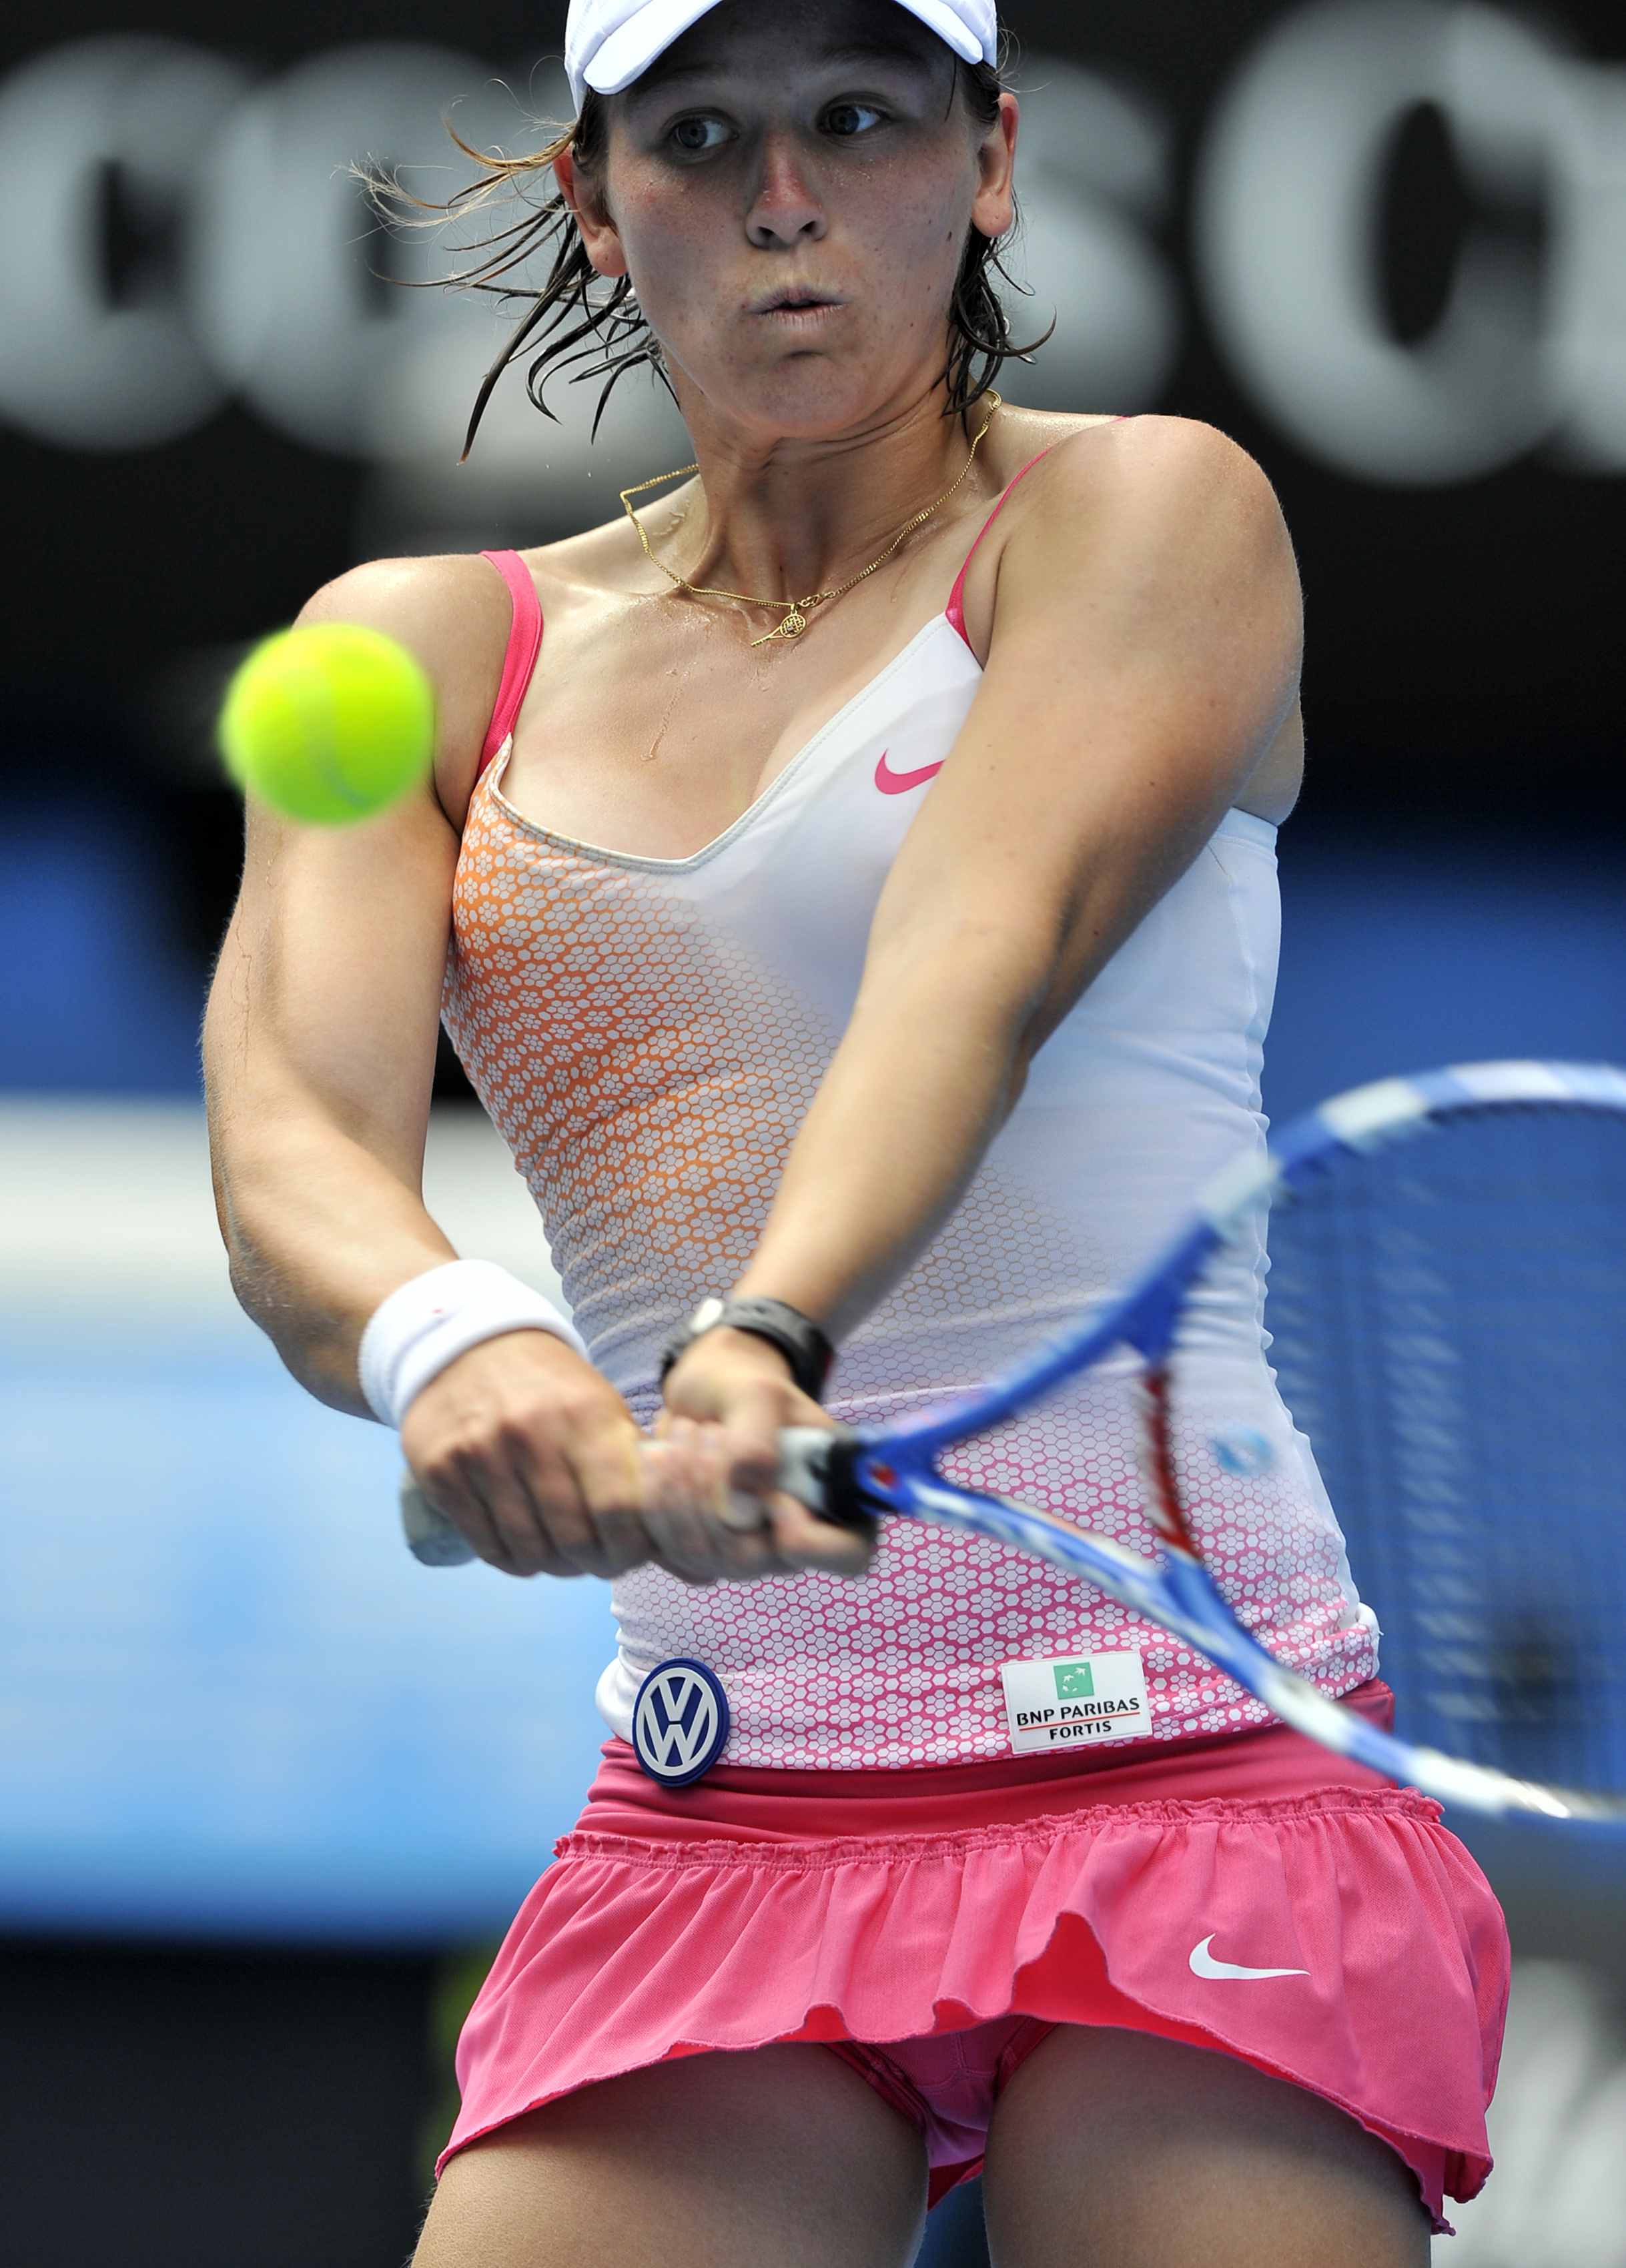 Tennis Upskirt Pics - Transexual Free Pictures